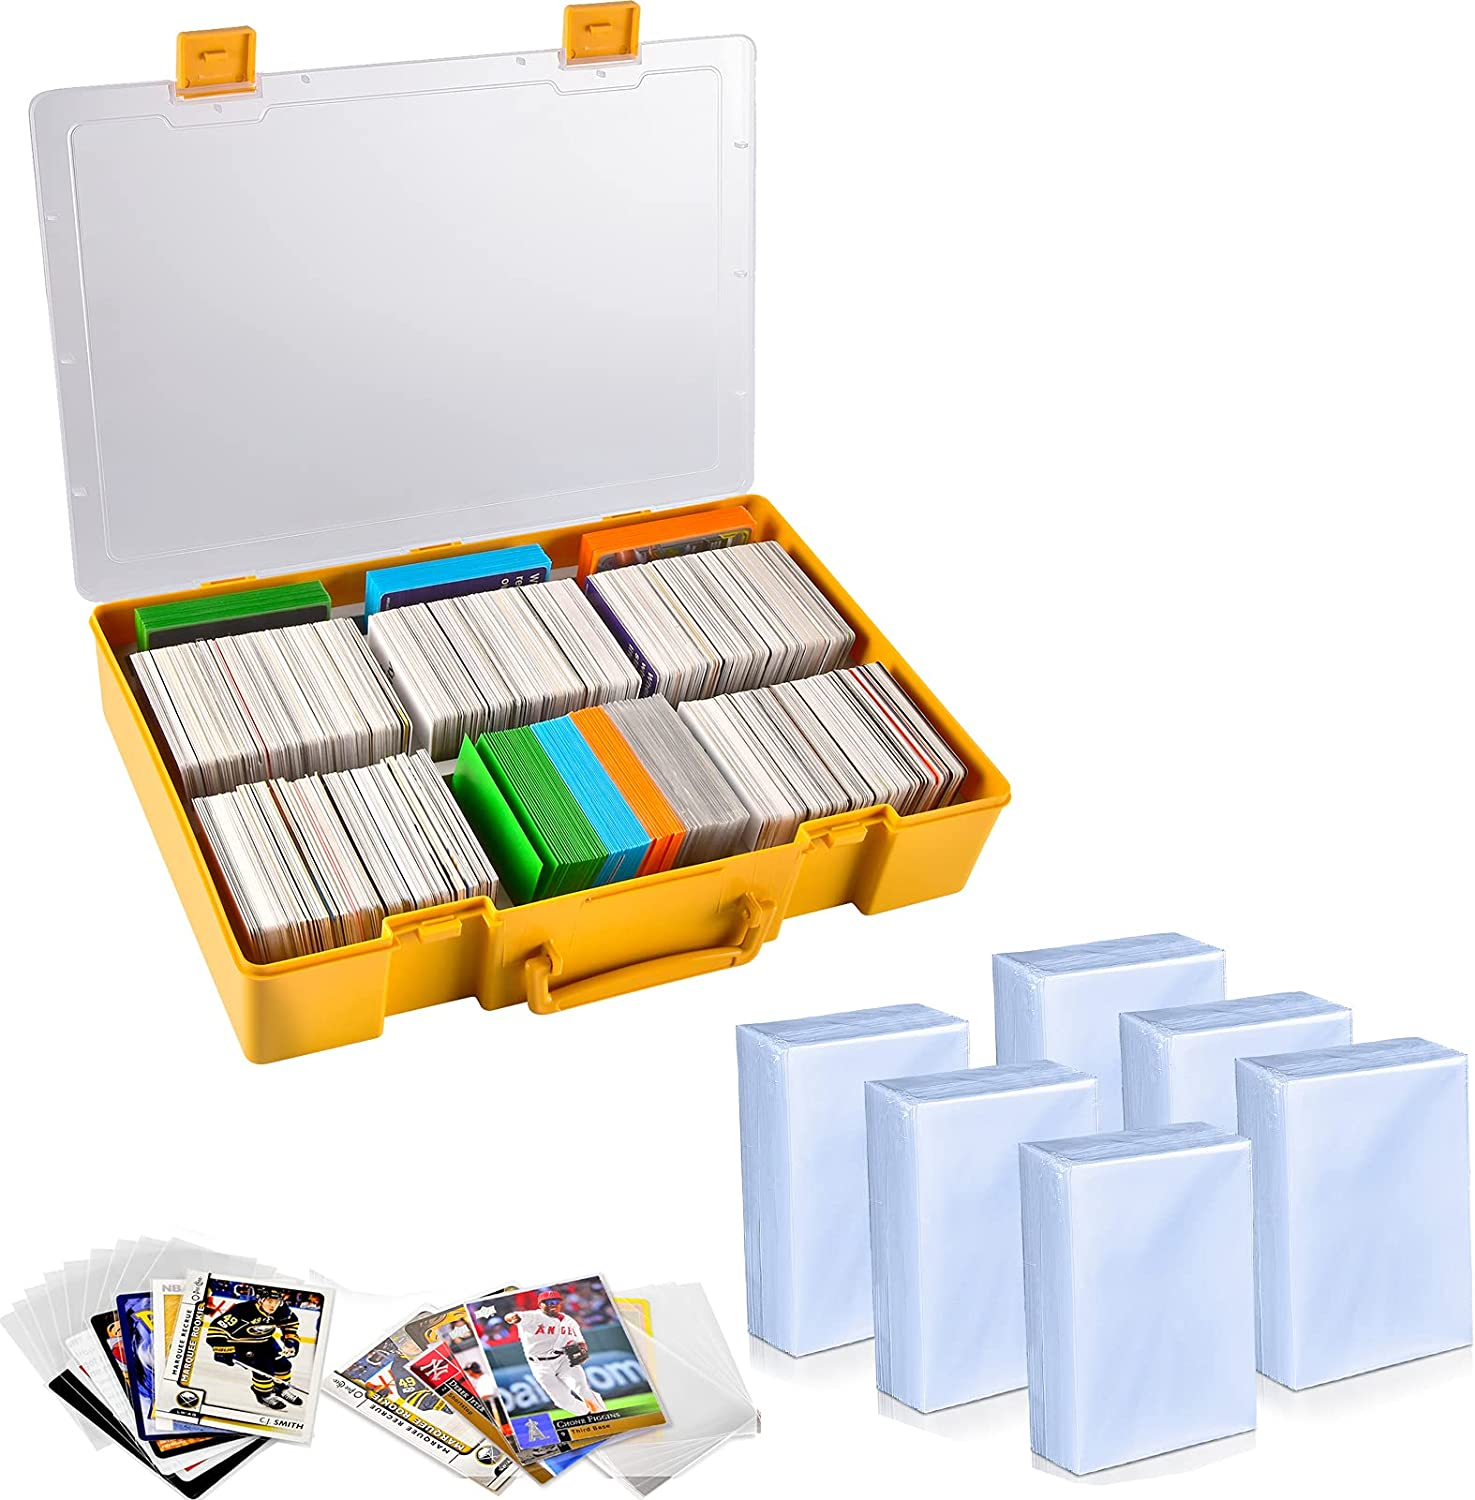 1600 Penny Sleeves Max 68% OFF Trading 5 popular Cards Tra Protectors Large with 2200+